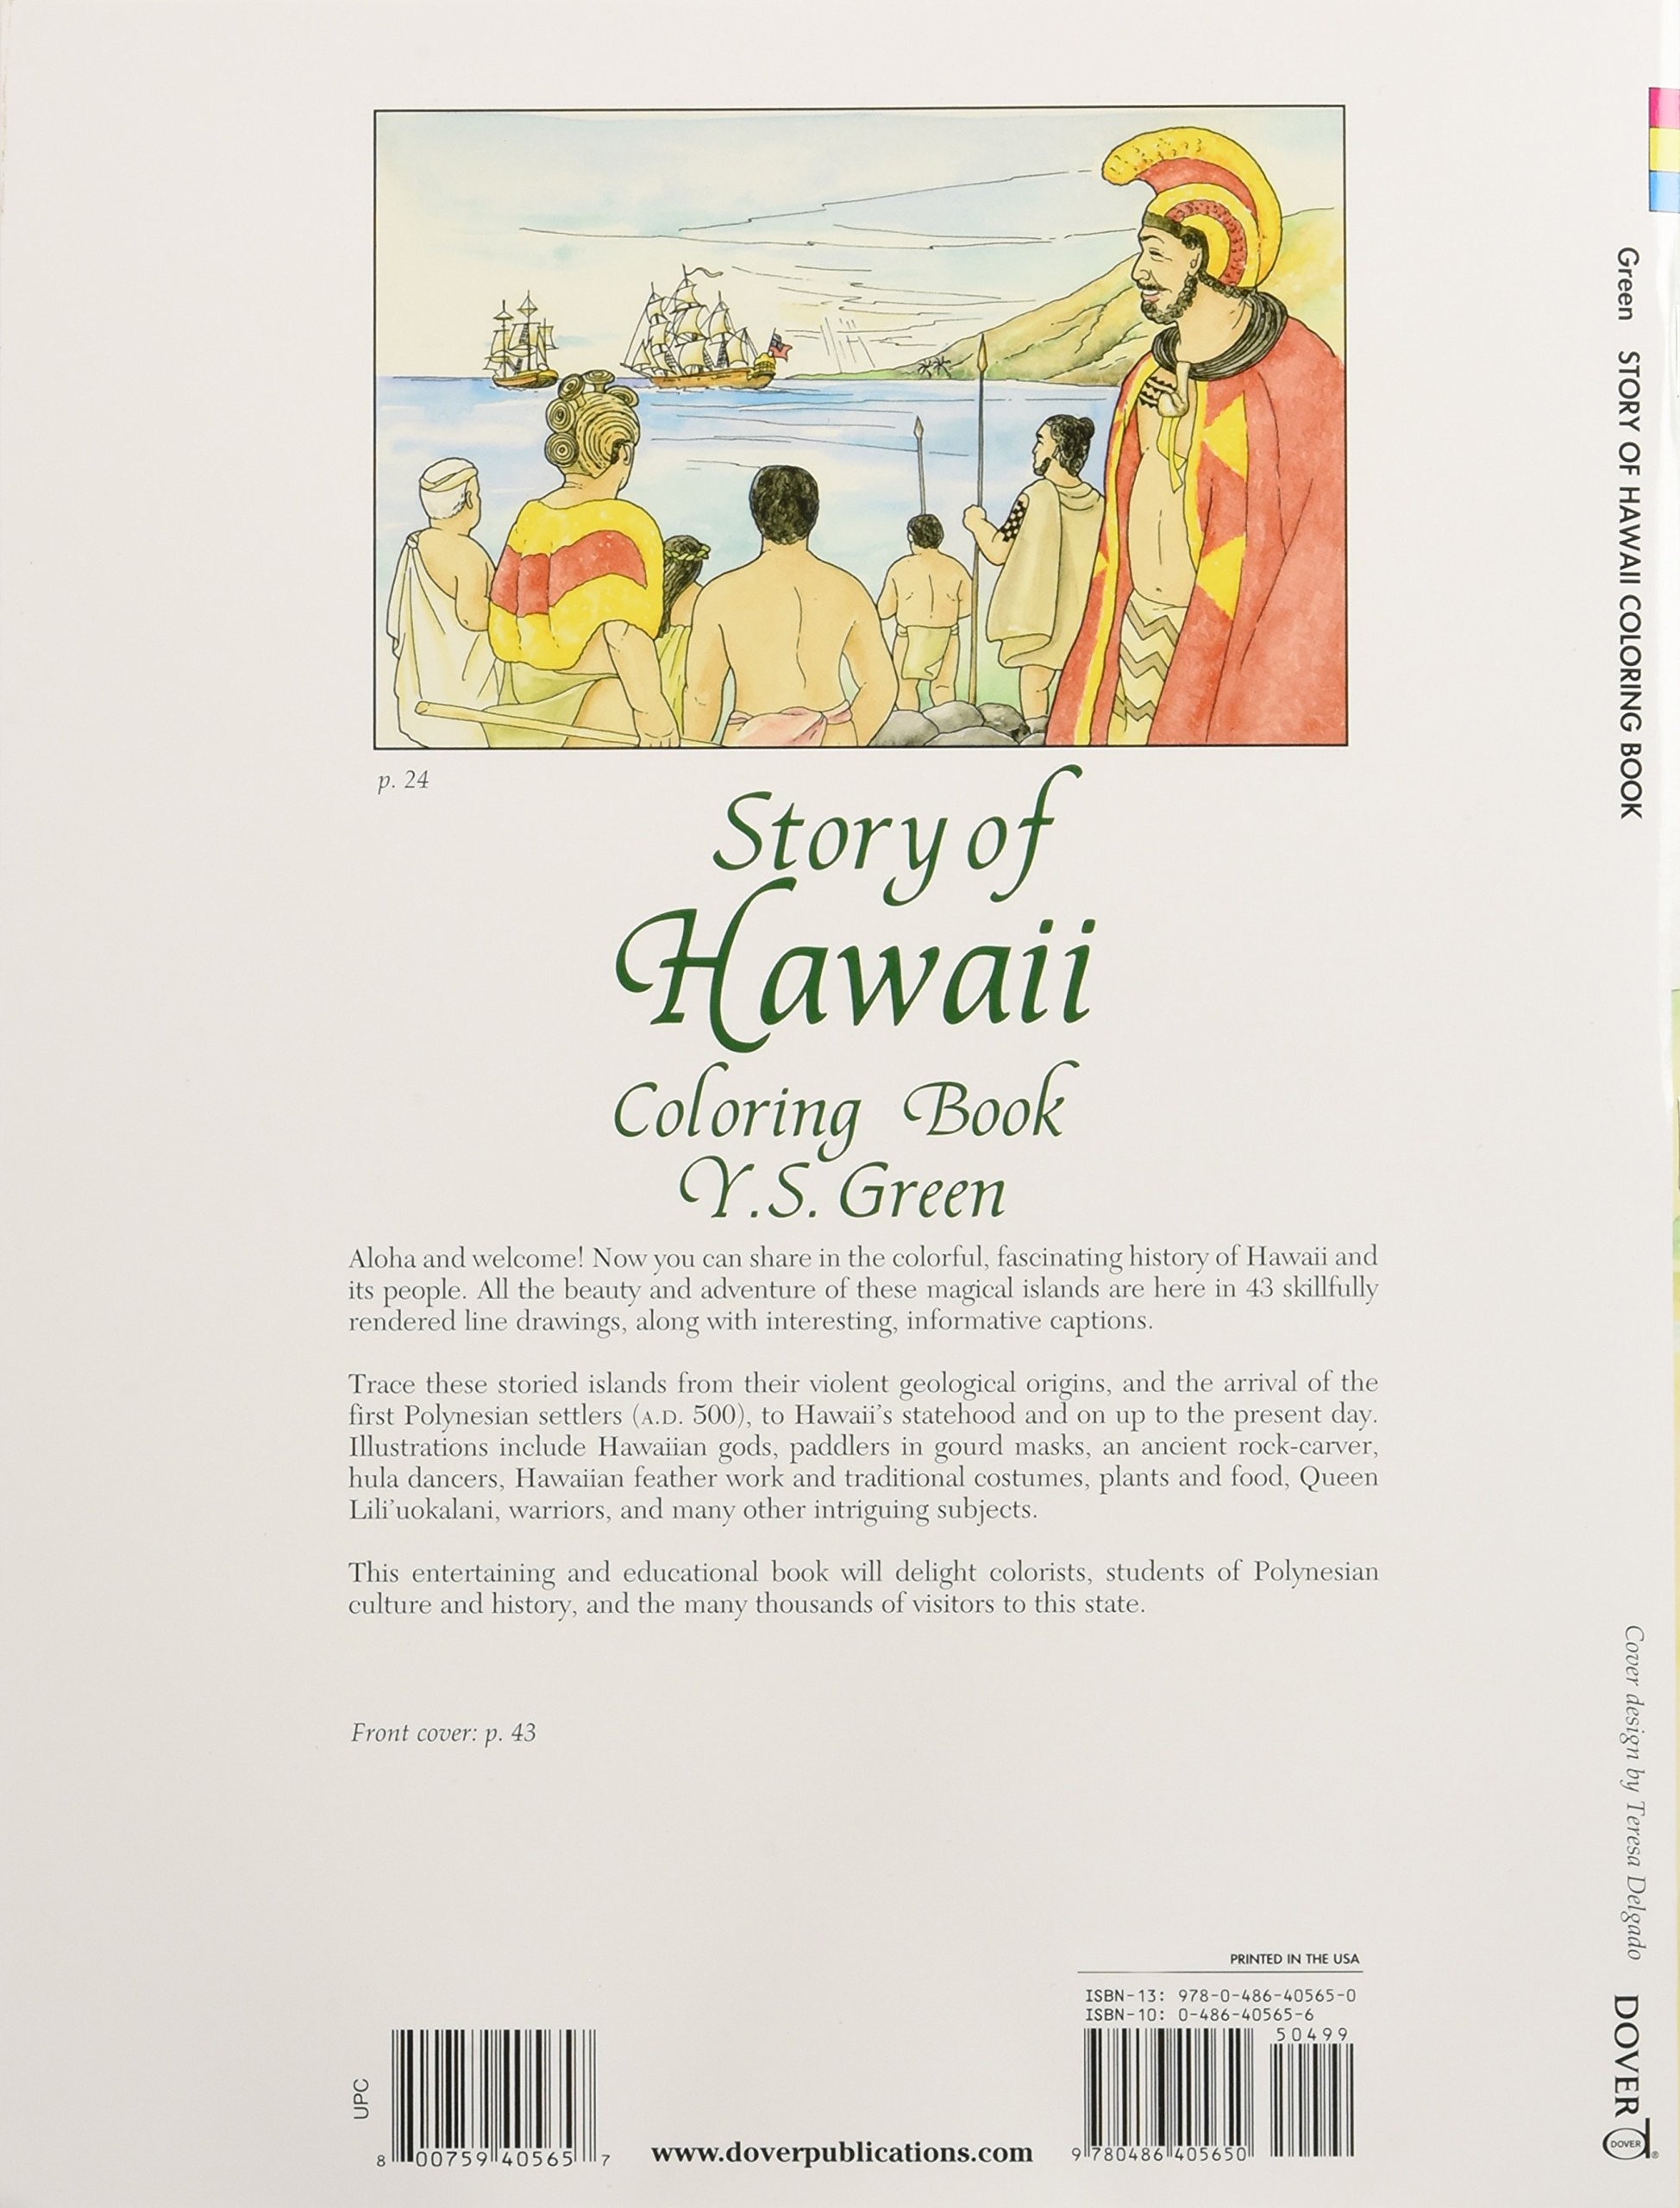 story of hawaii coloring book dover history coloring book y s green coloring books 0800759405657 amazoncom books - Hawaii Coloring Book